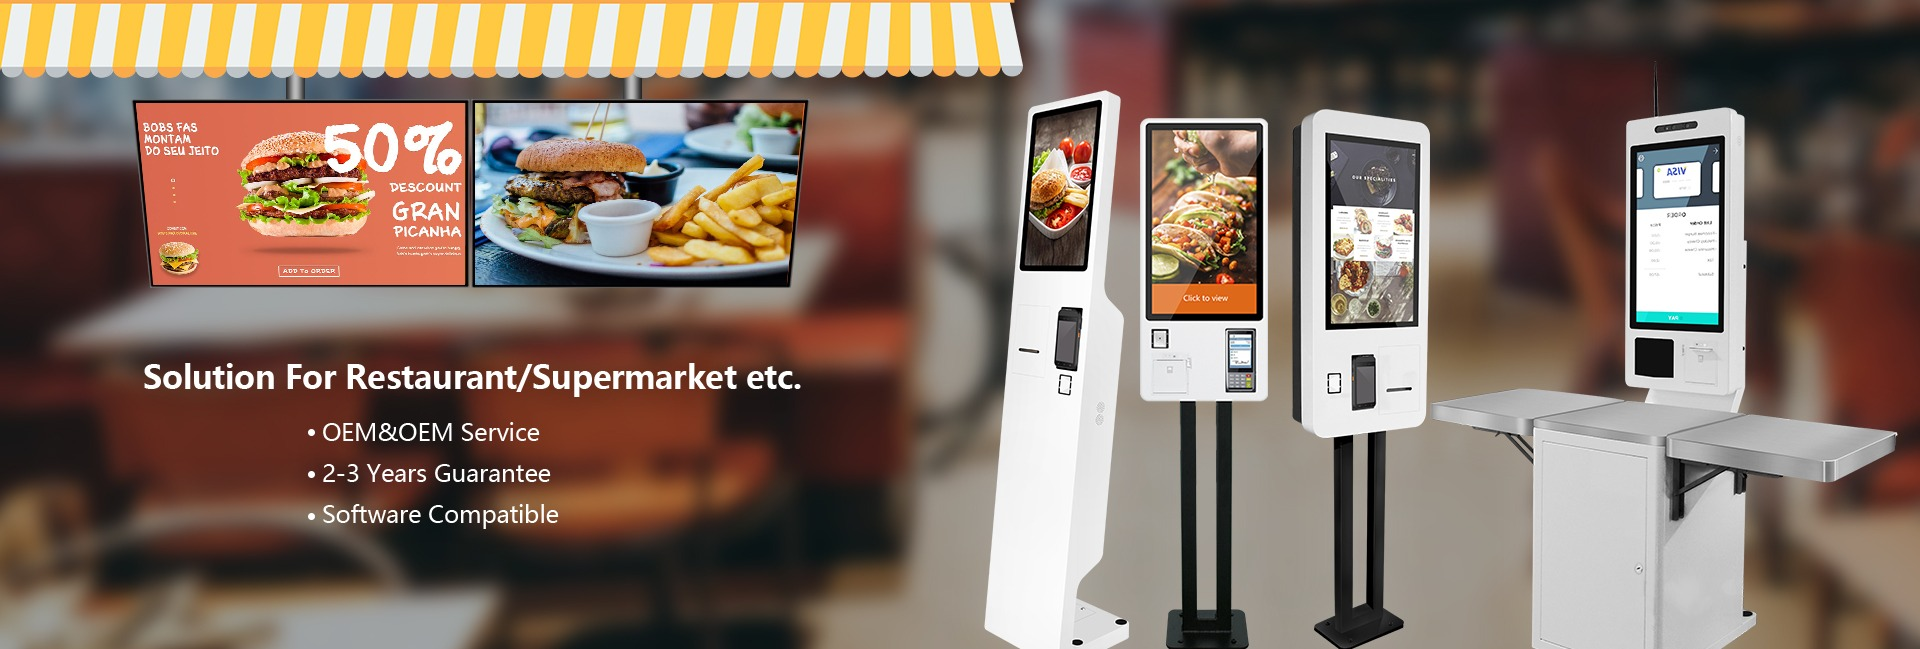 restaurant mobile ordering app Digital Screens and self order kiosk